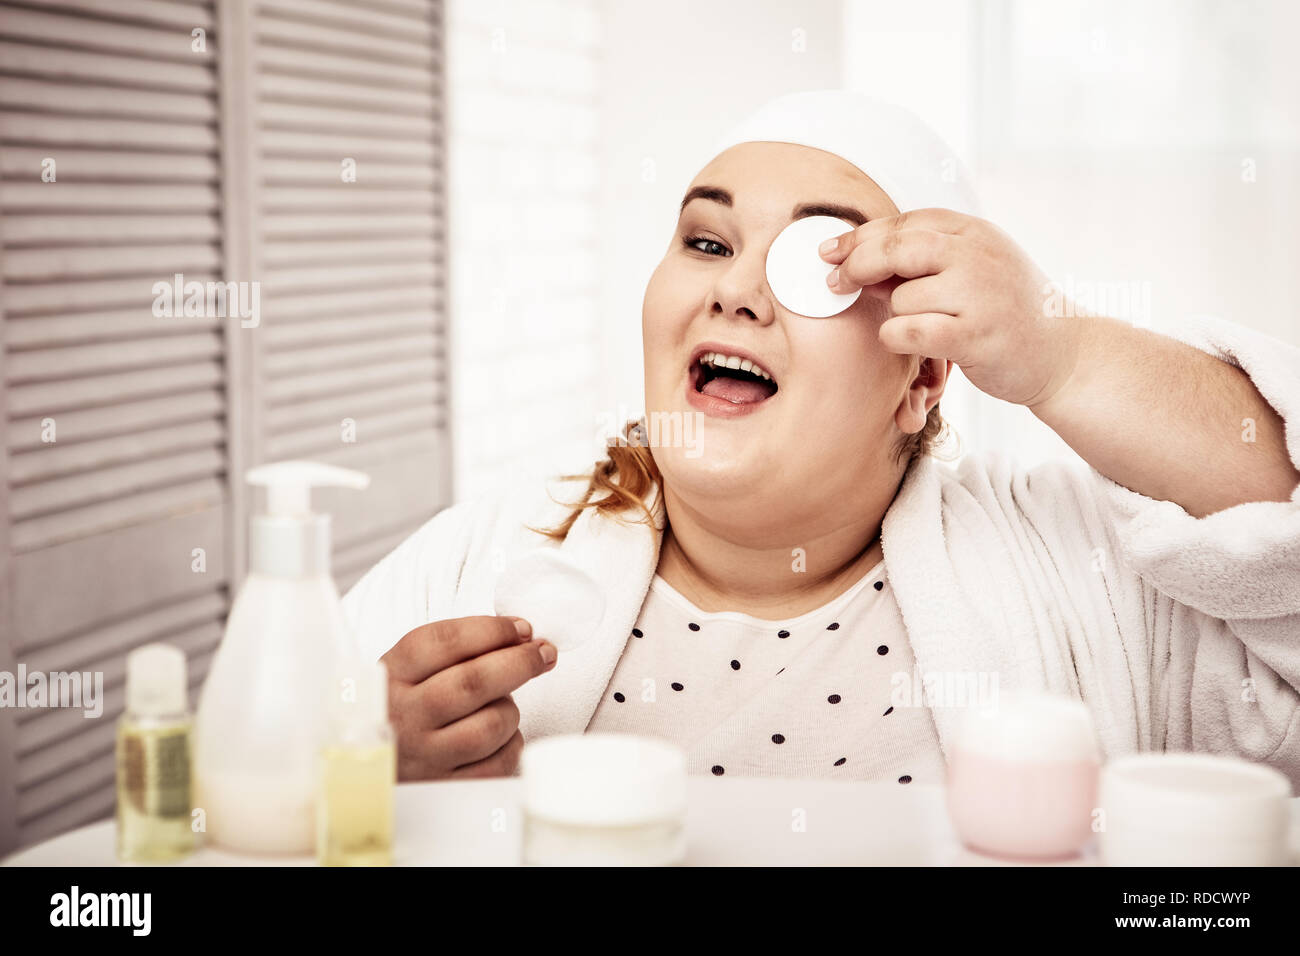 Contented overweight woman using cotton pad for removing - Stock Image